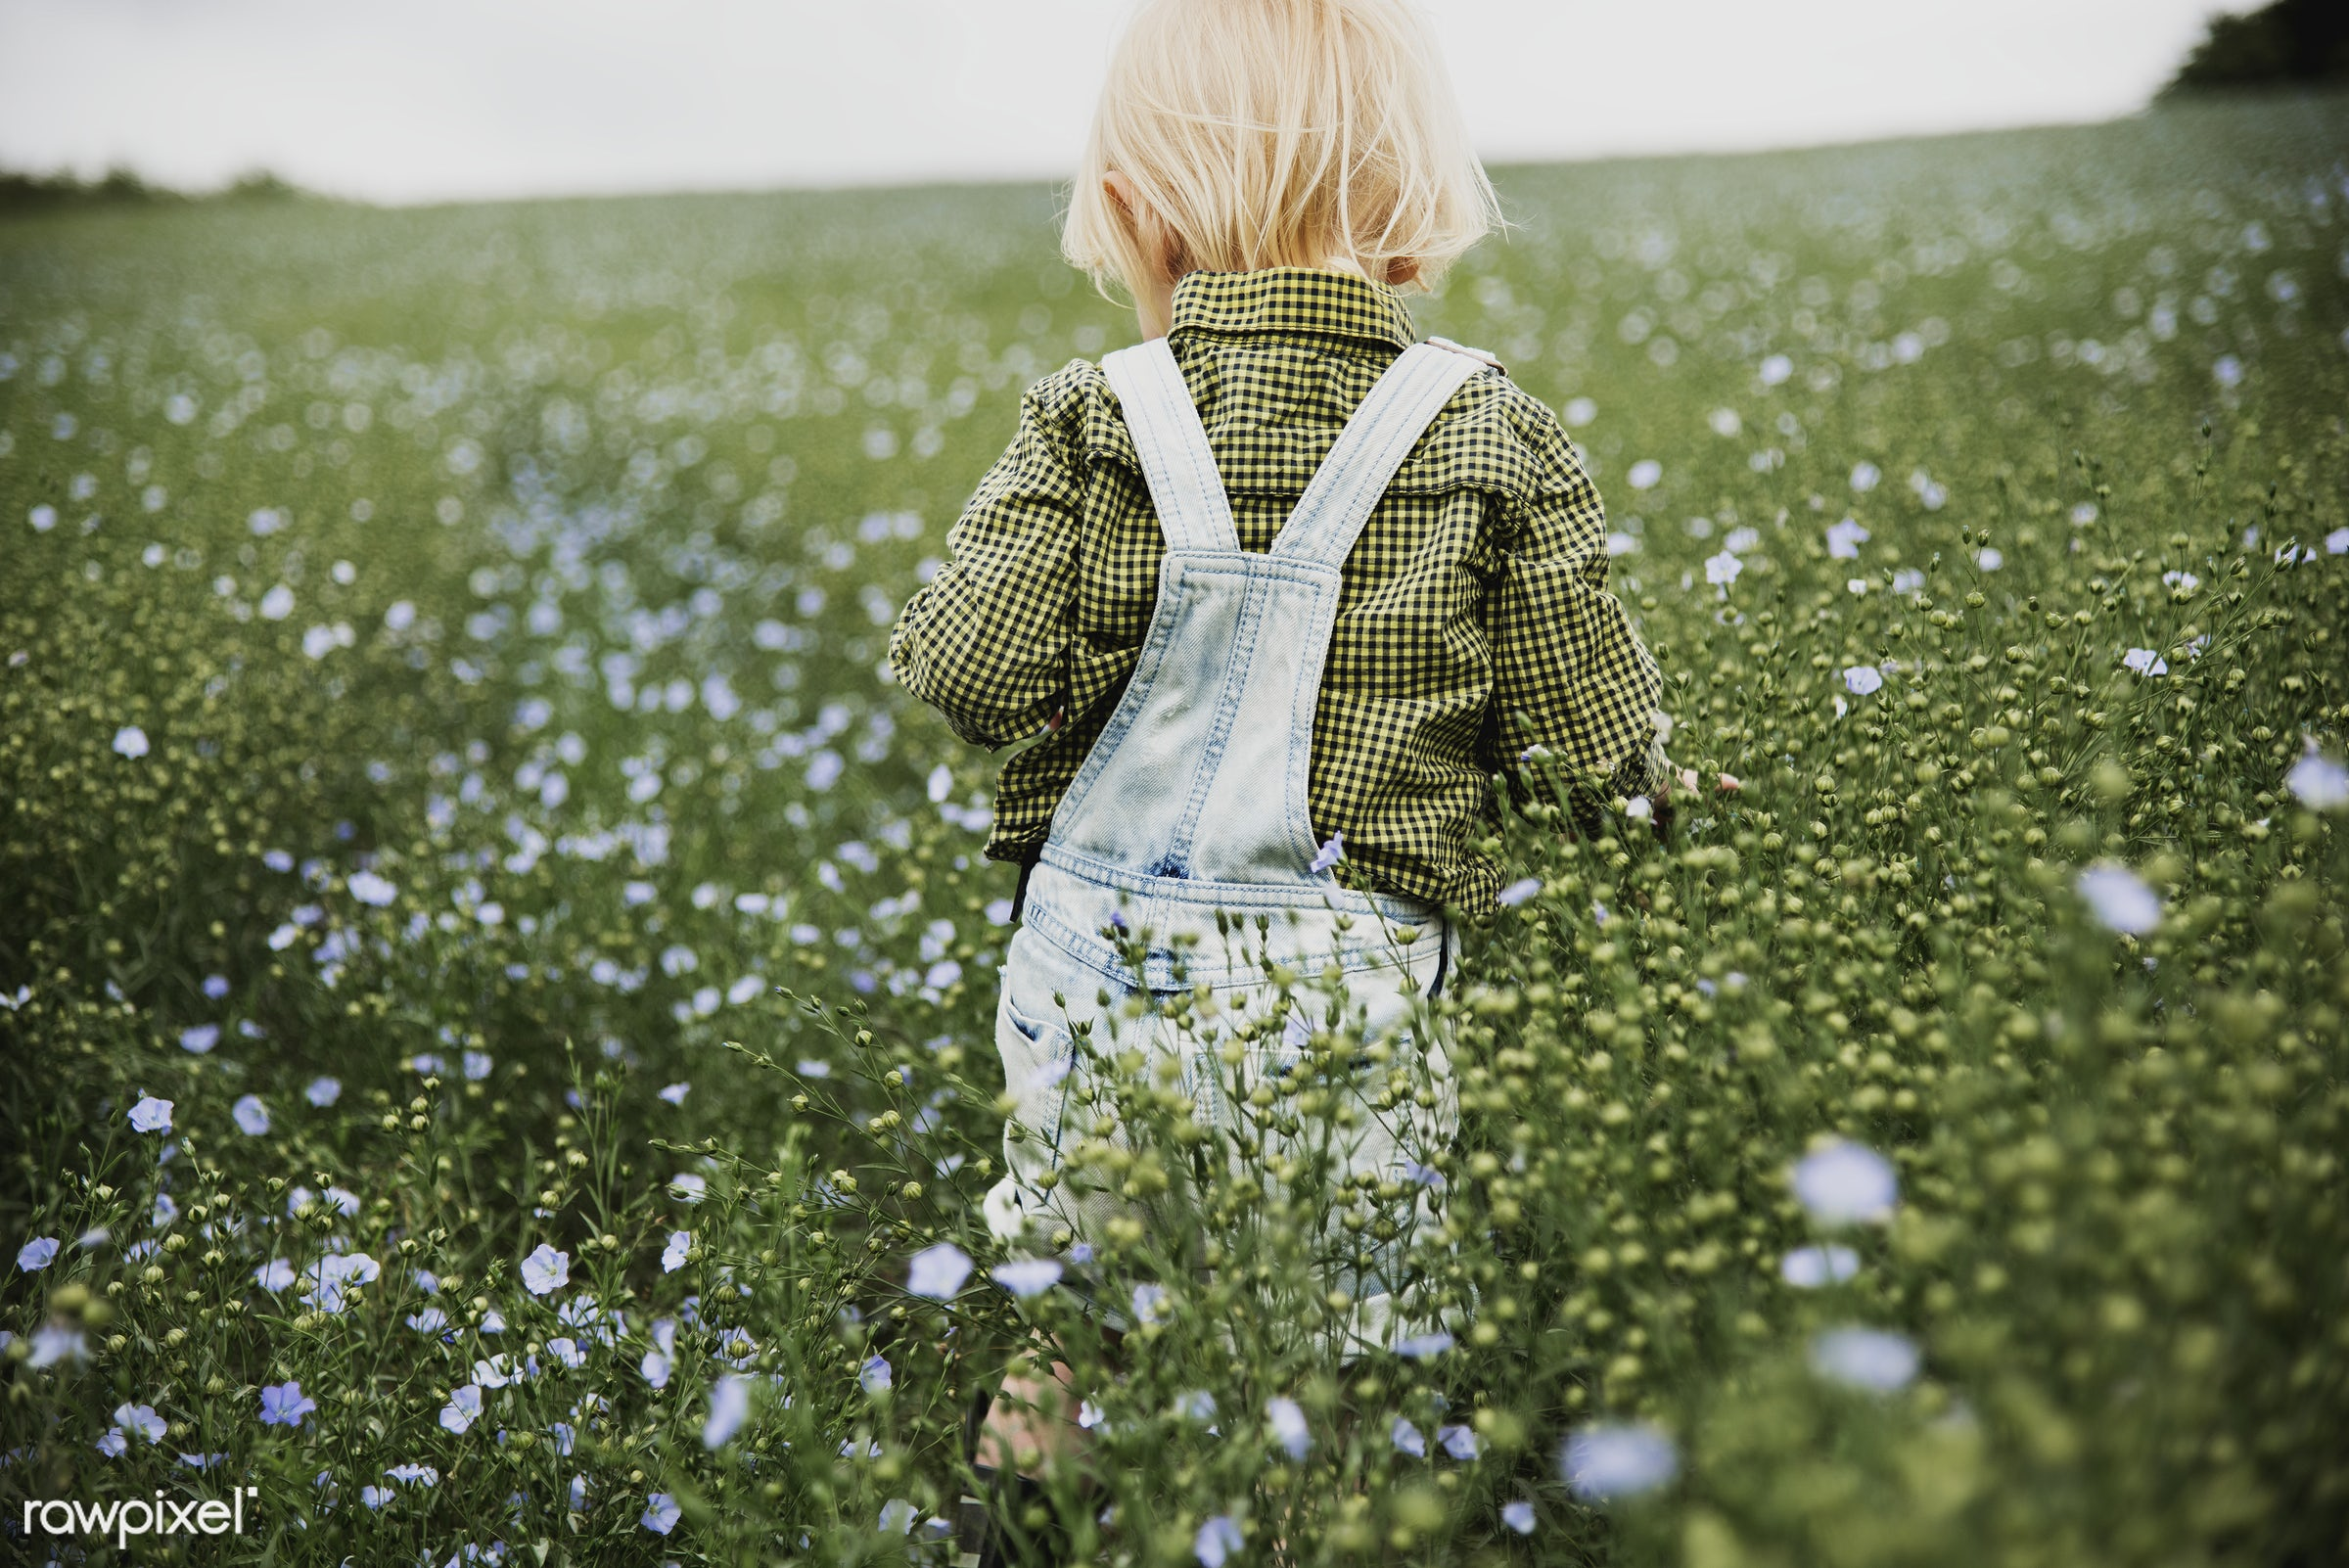 Kid in flower field - alone, backyard, bloom, blooming, botanical, botany, boy, caucasian, cheerful, countryside, cultivate...